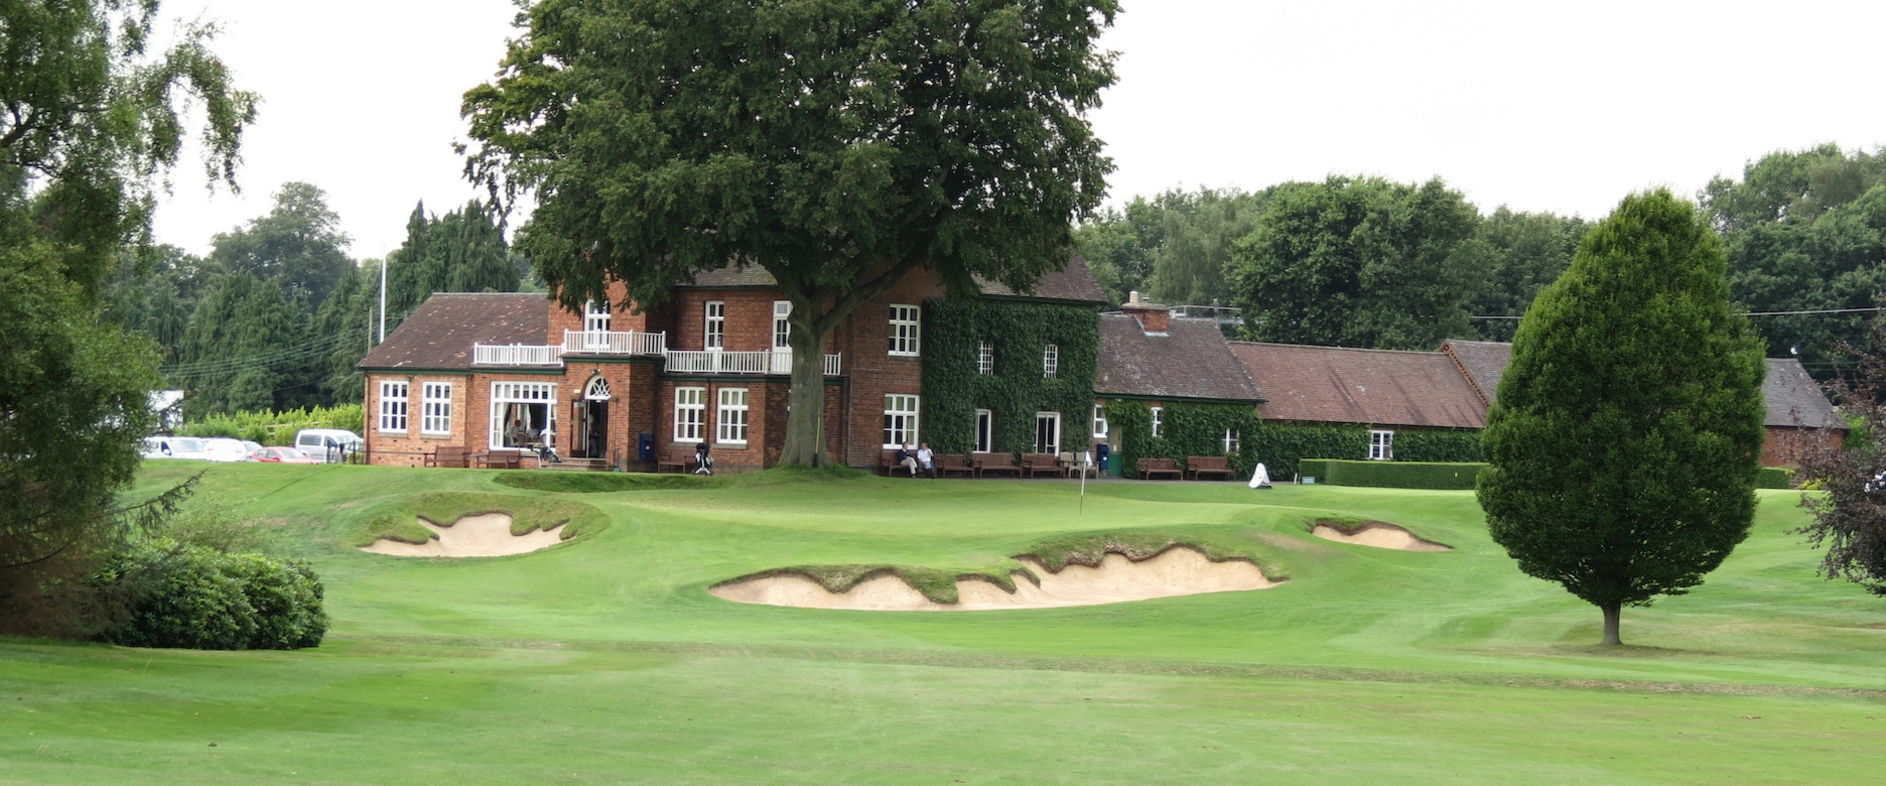 Blackwell GC hosted the DS, KC and R&A Salvers finals on Sunday 23rd August 2020